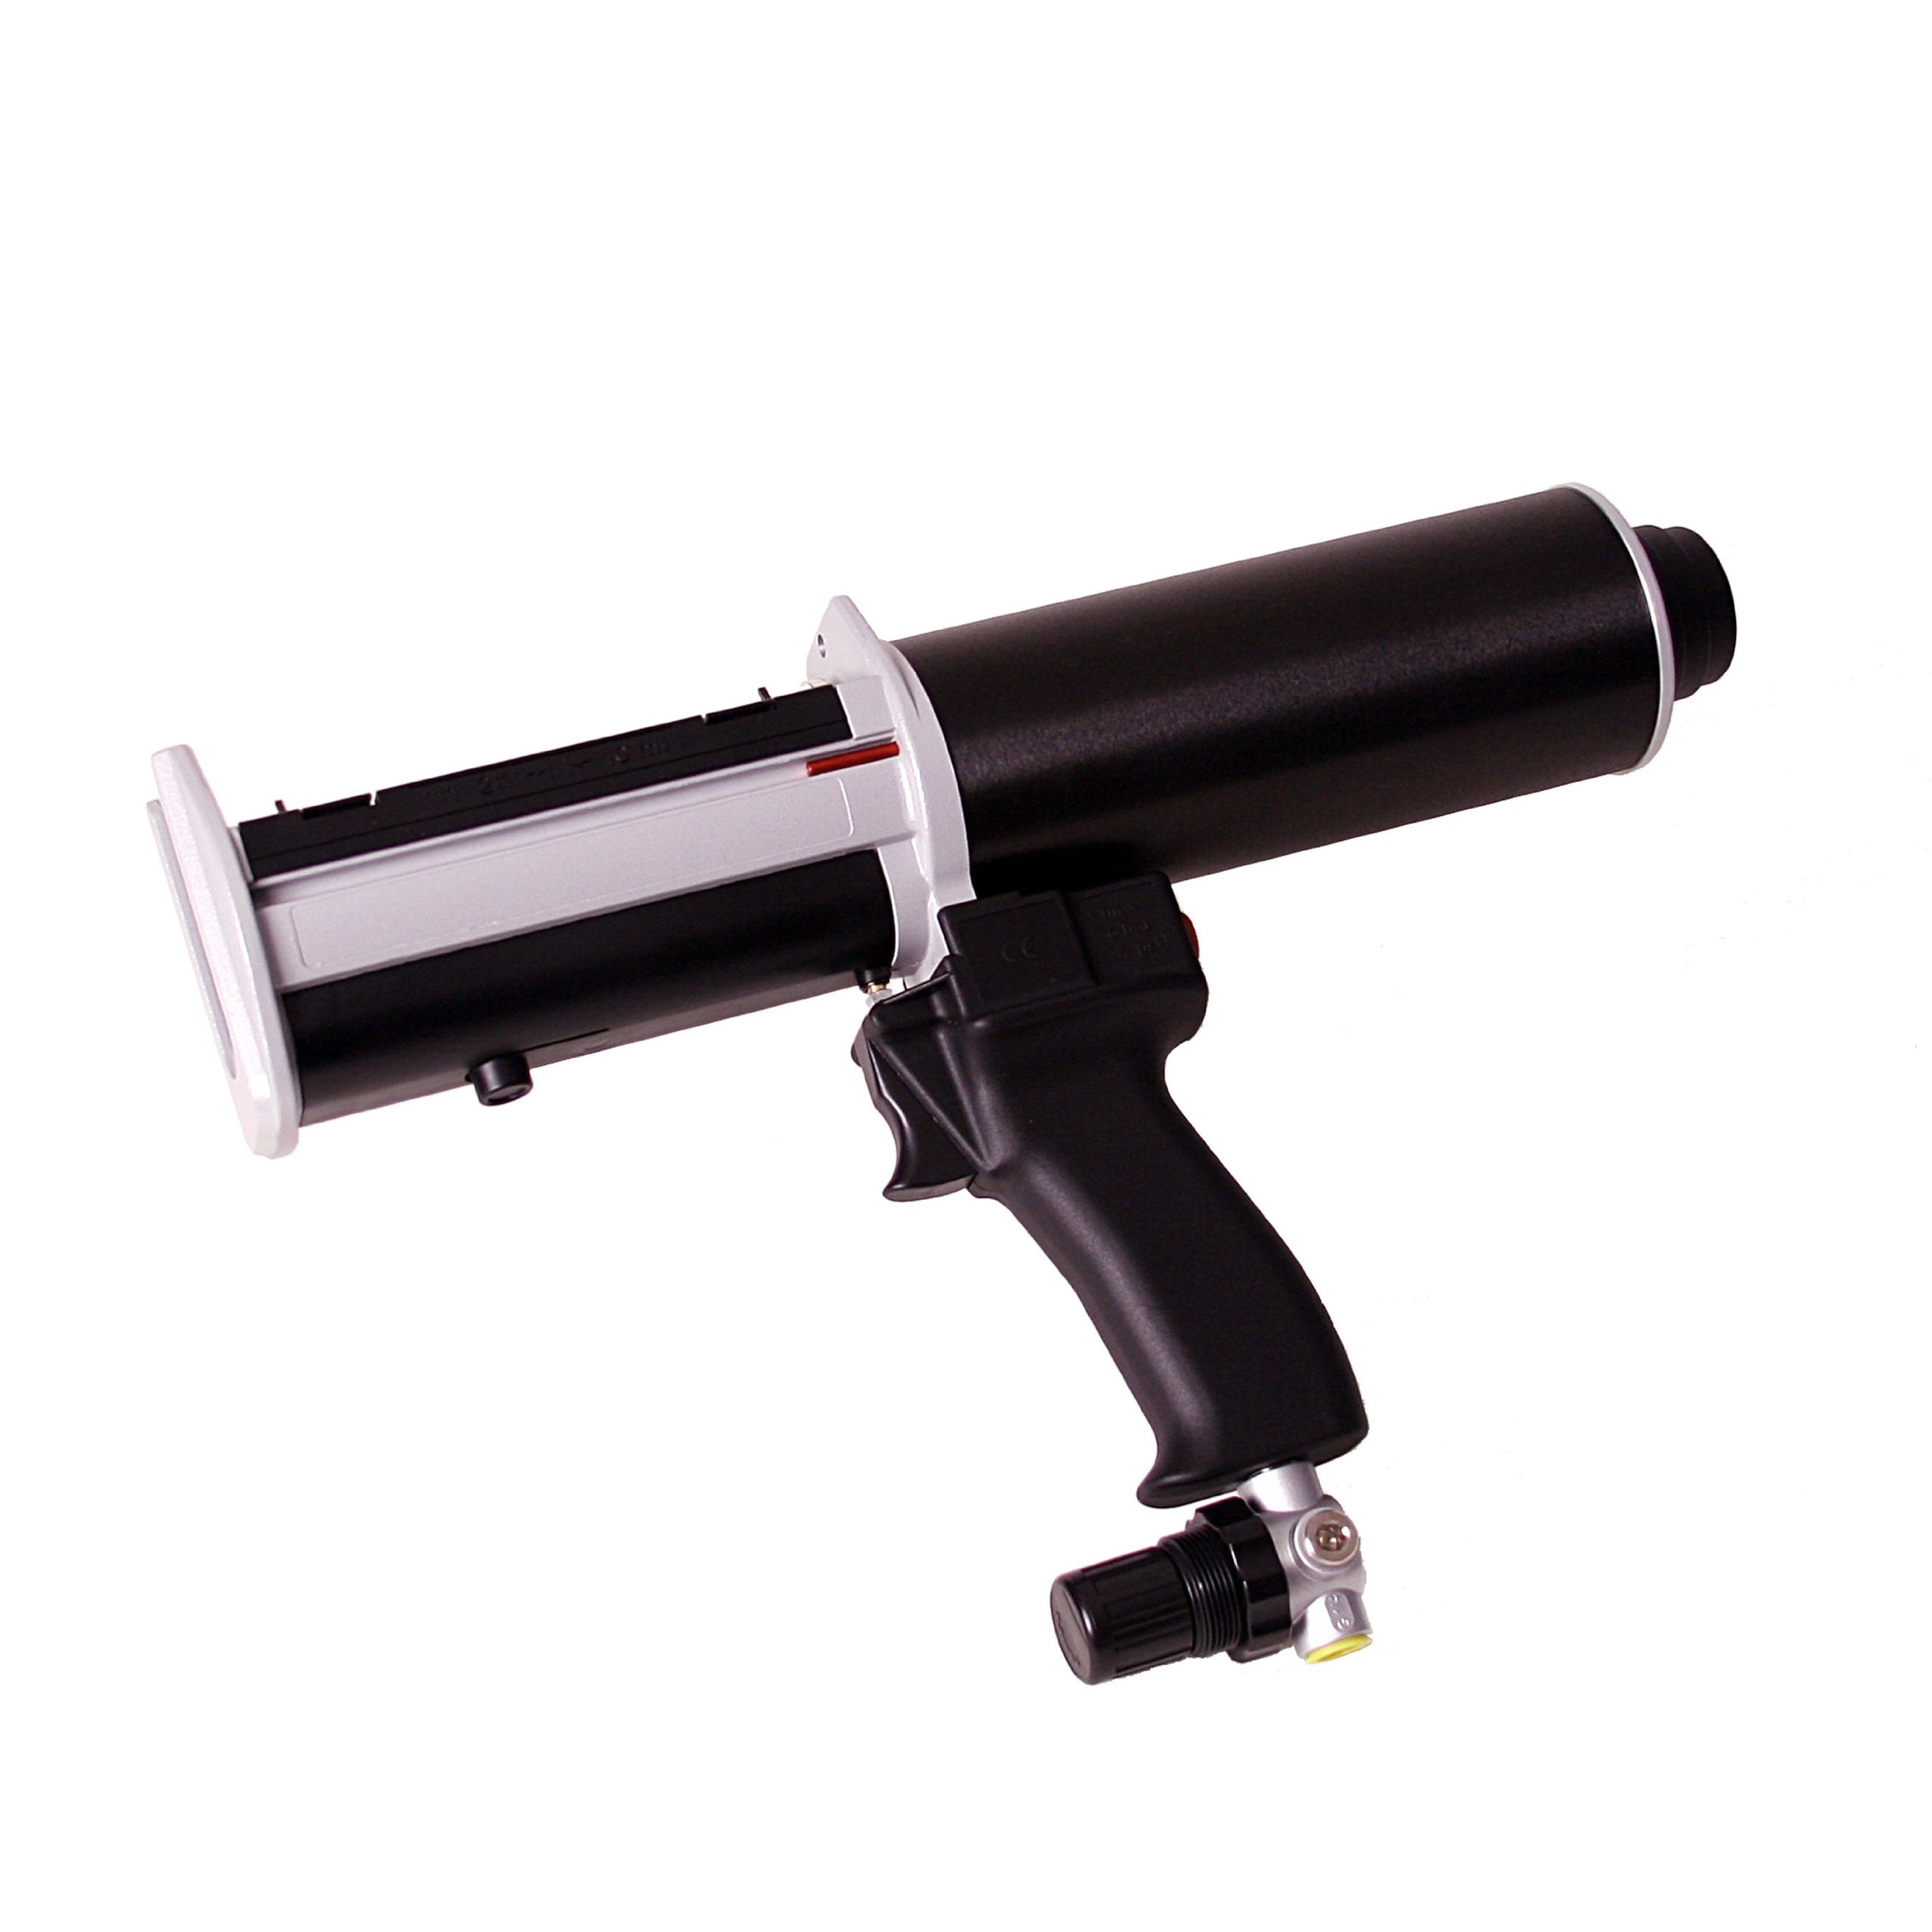 3M 09930 Performance Pneumatic Applicator for 200 ml Cartridges